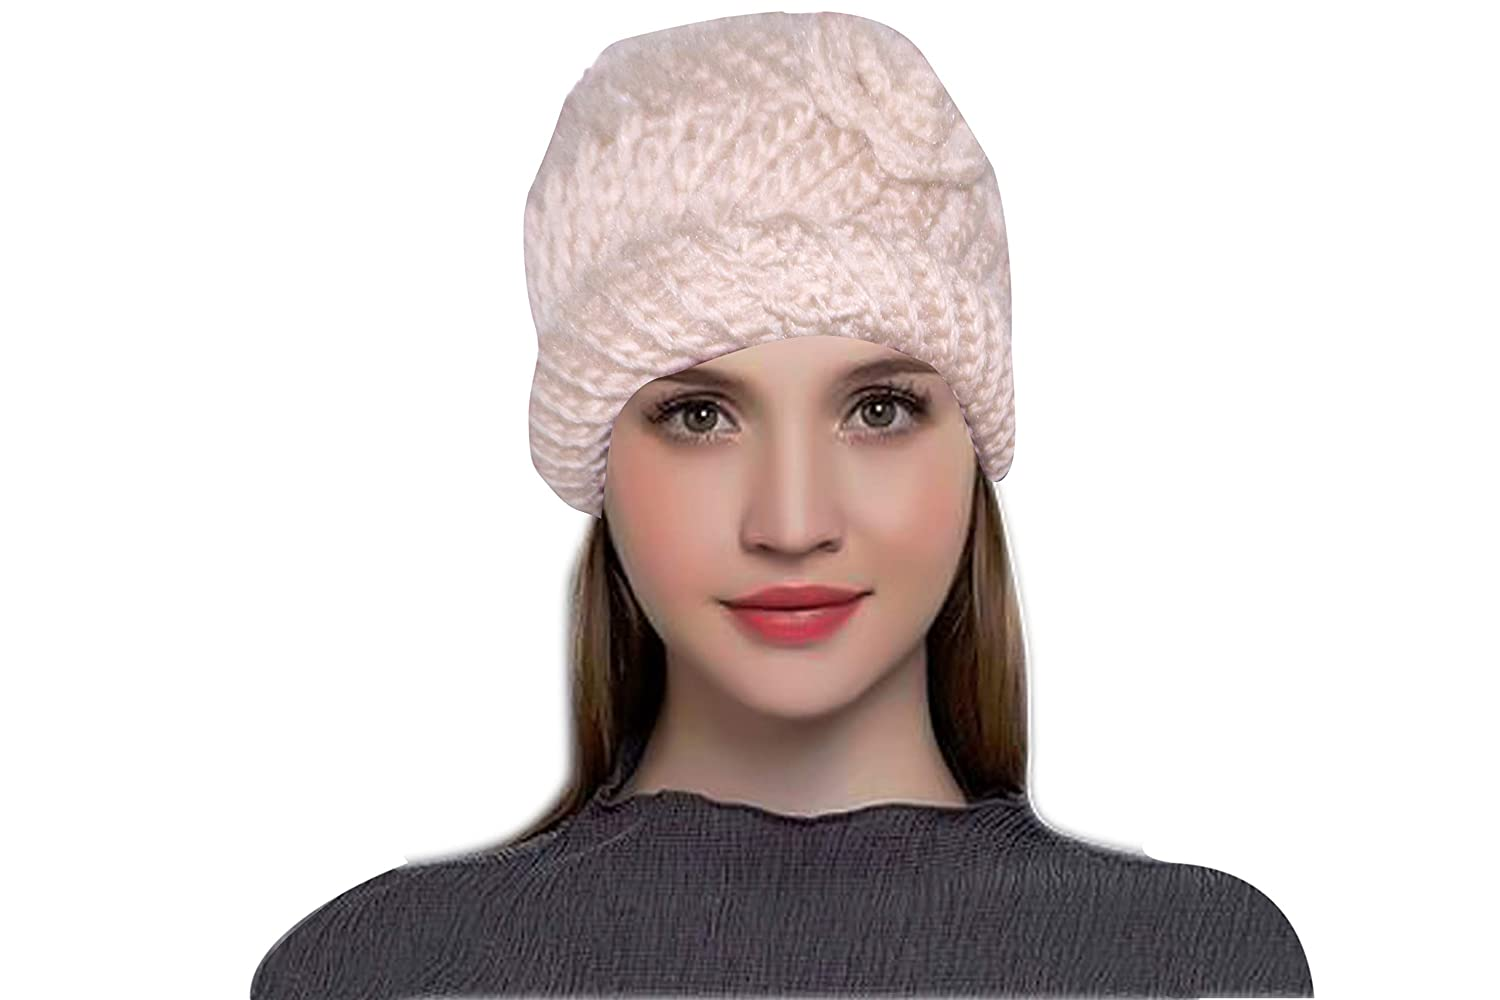 fb30aa80b5e MAGIC Knitted Beanie Skull Cap Warm Winter Woolen Cap for Women  (Off-White)  Amazon.in  Clothing   Accessories